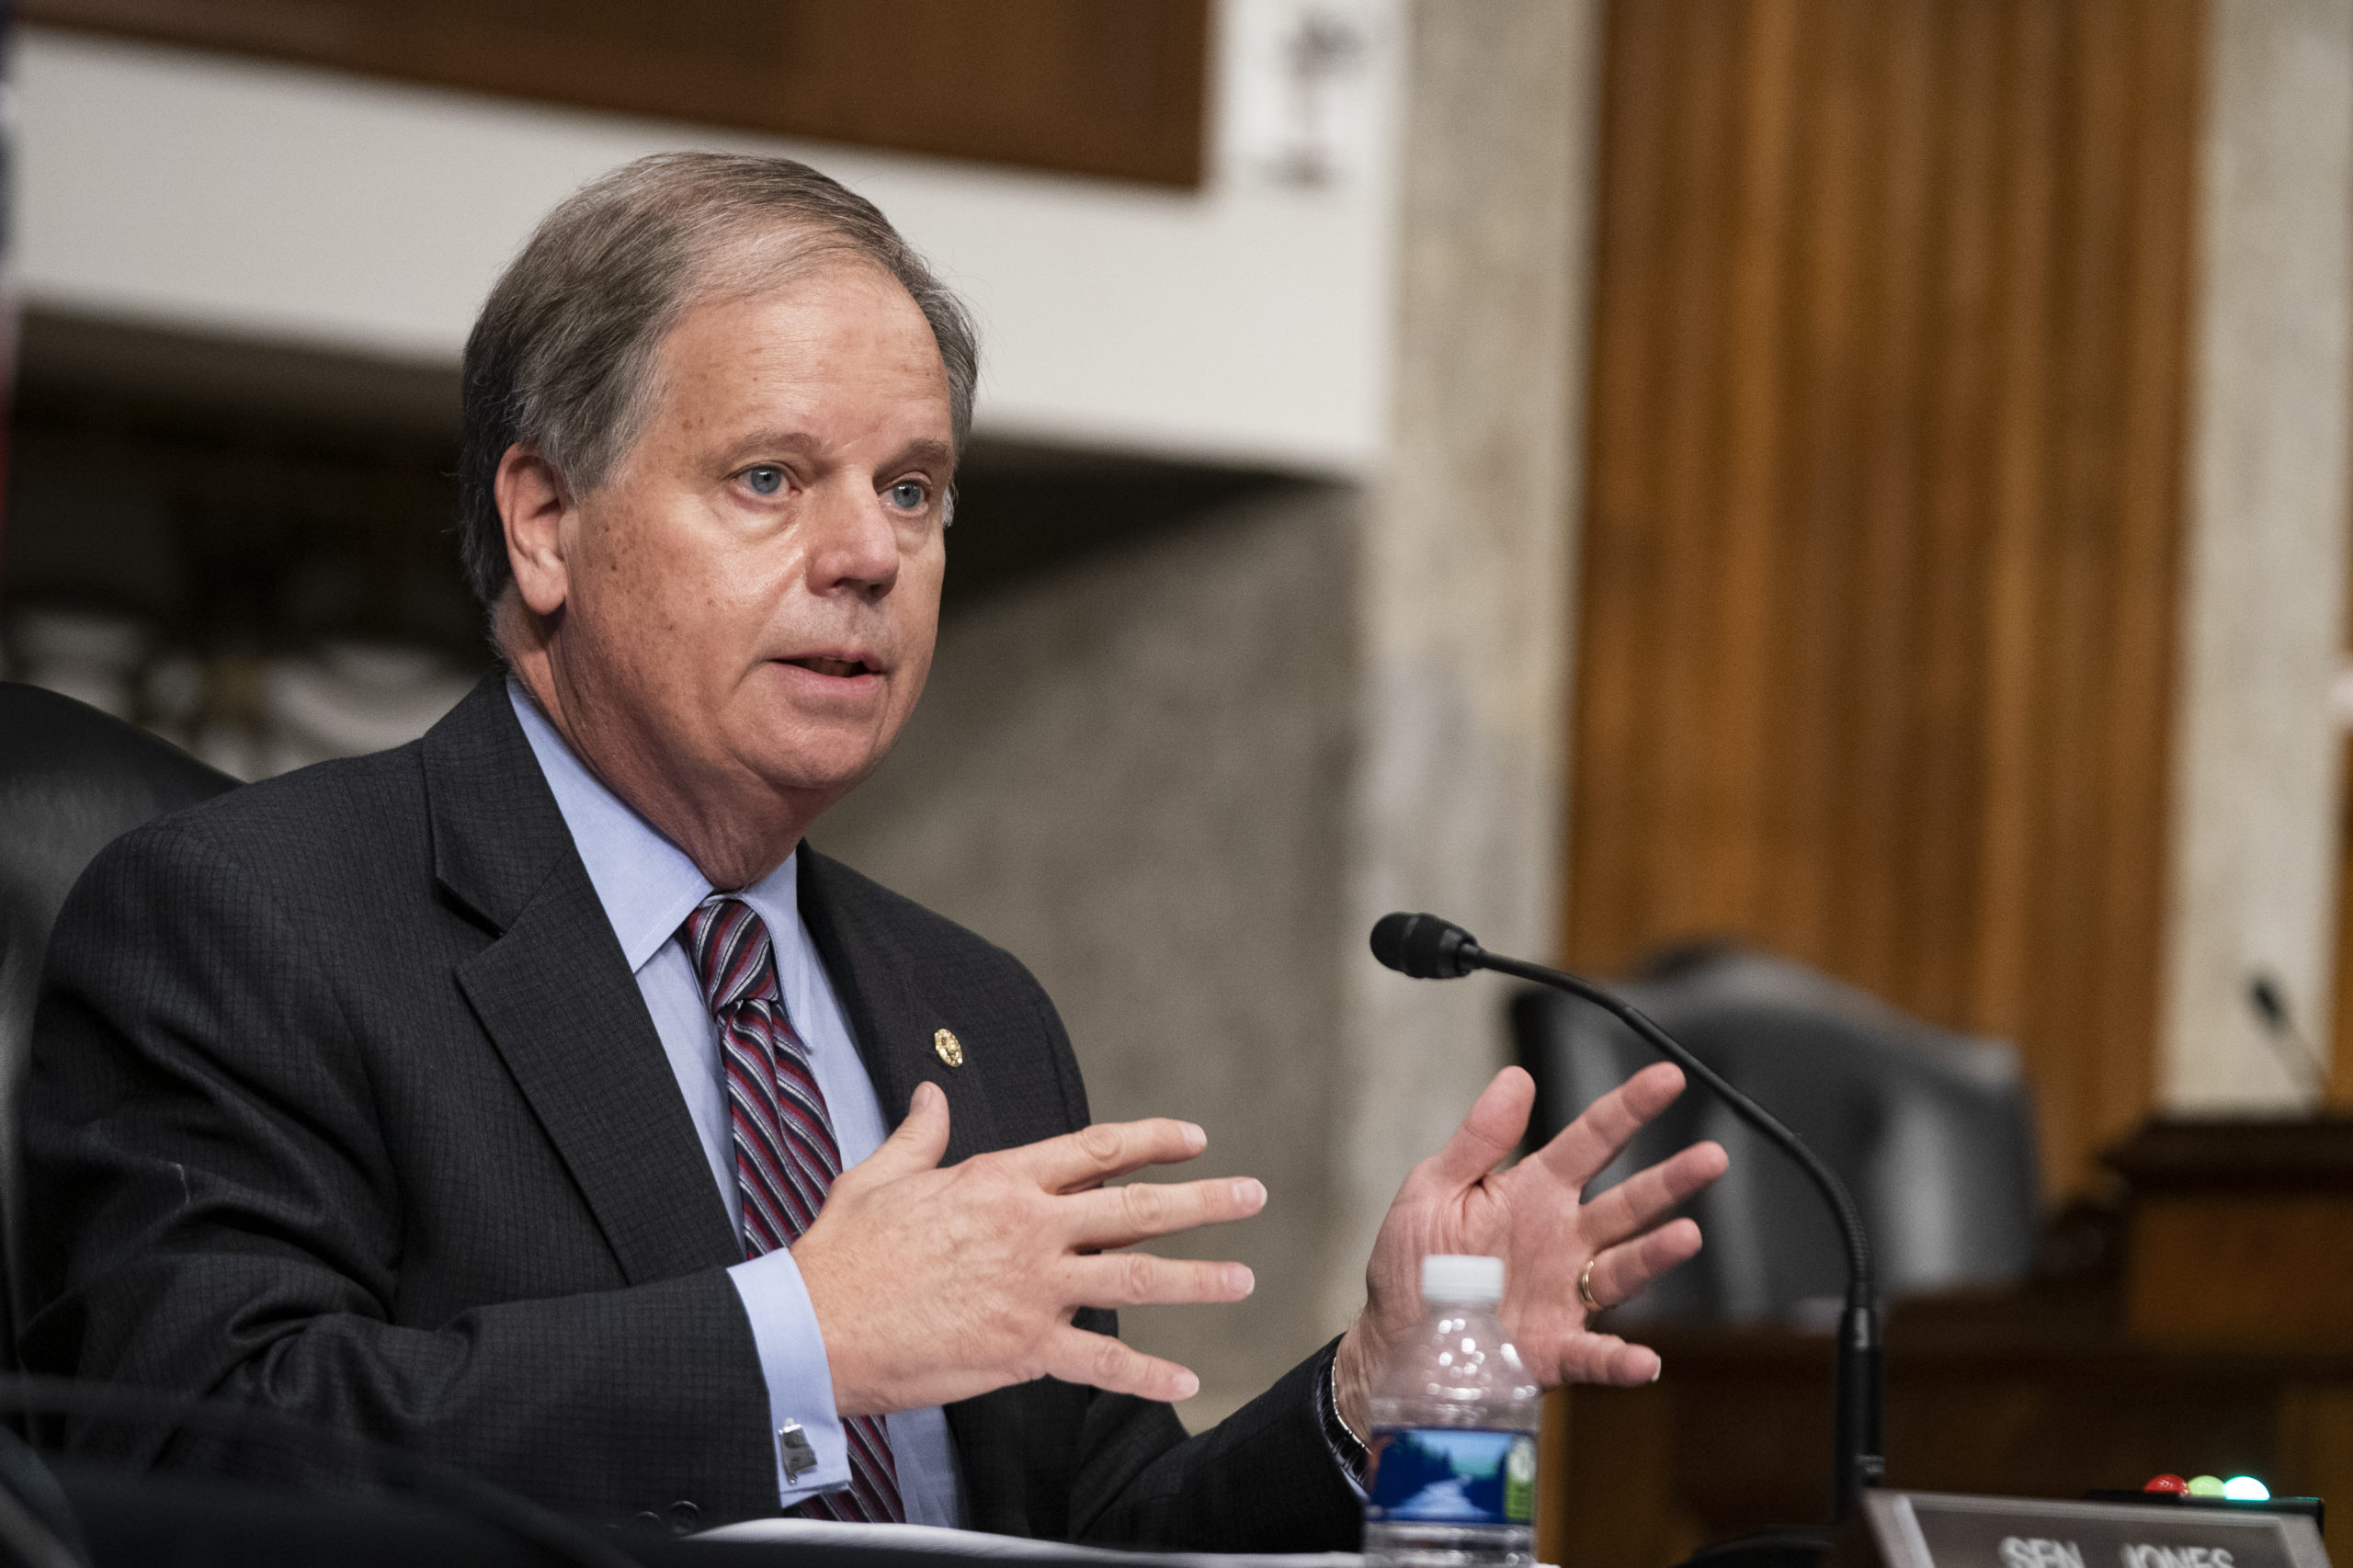 Alabama Sen. Doug Jones asks a question at a hearing on Sept. 23, in Washington, D.C. (Alex Edelman-Pool/Getty Images)